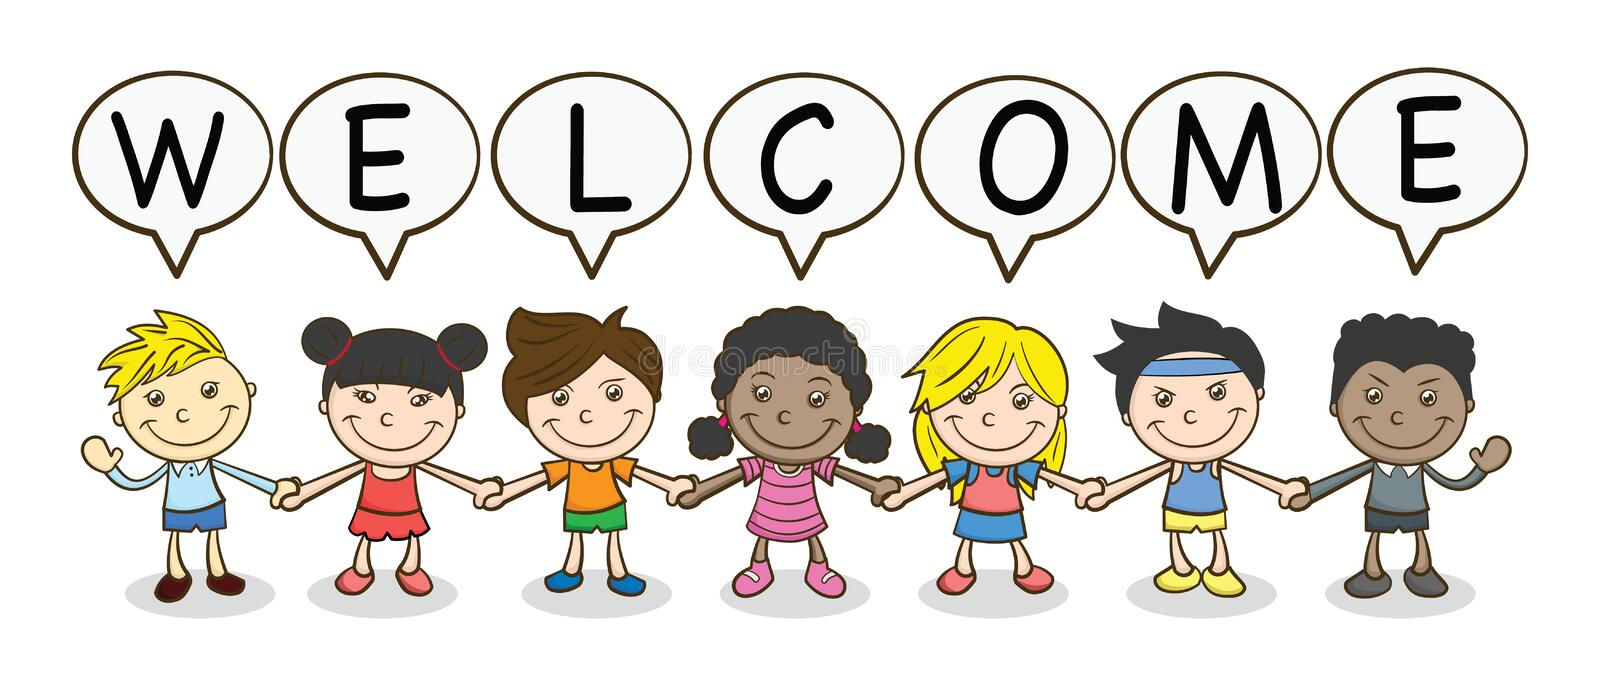 Vector Illustration Of Funny Kids Welcome Stock Vector - Illustration of  heart, gills: 159065872